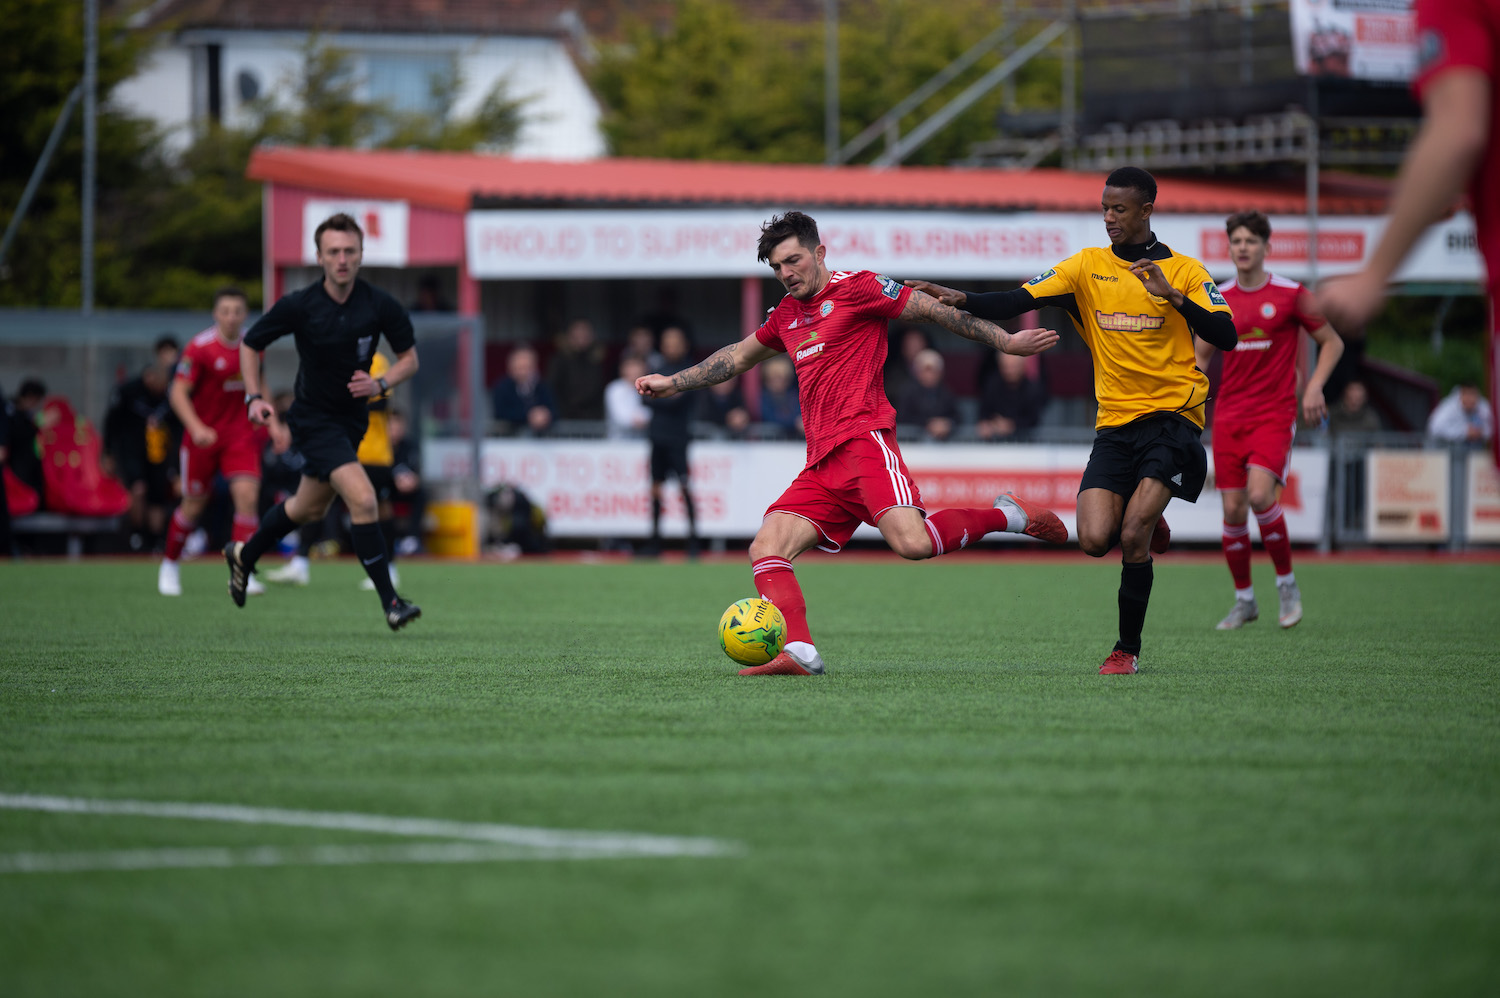 Read the full article - Merstham Figueira It Out